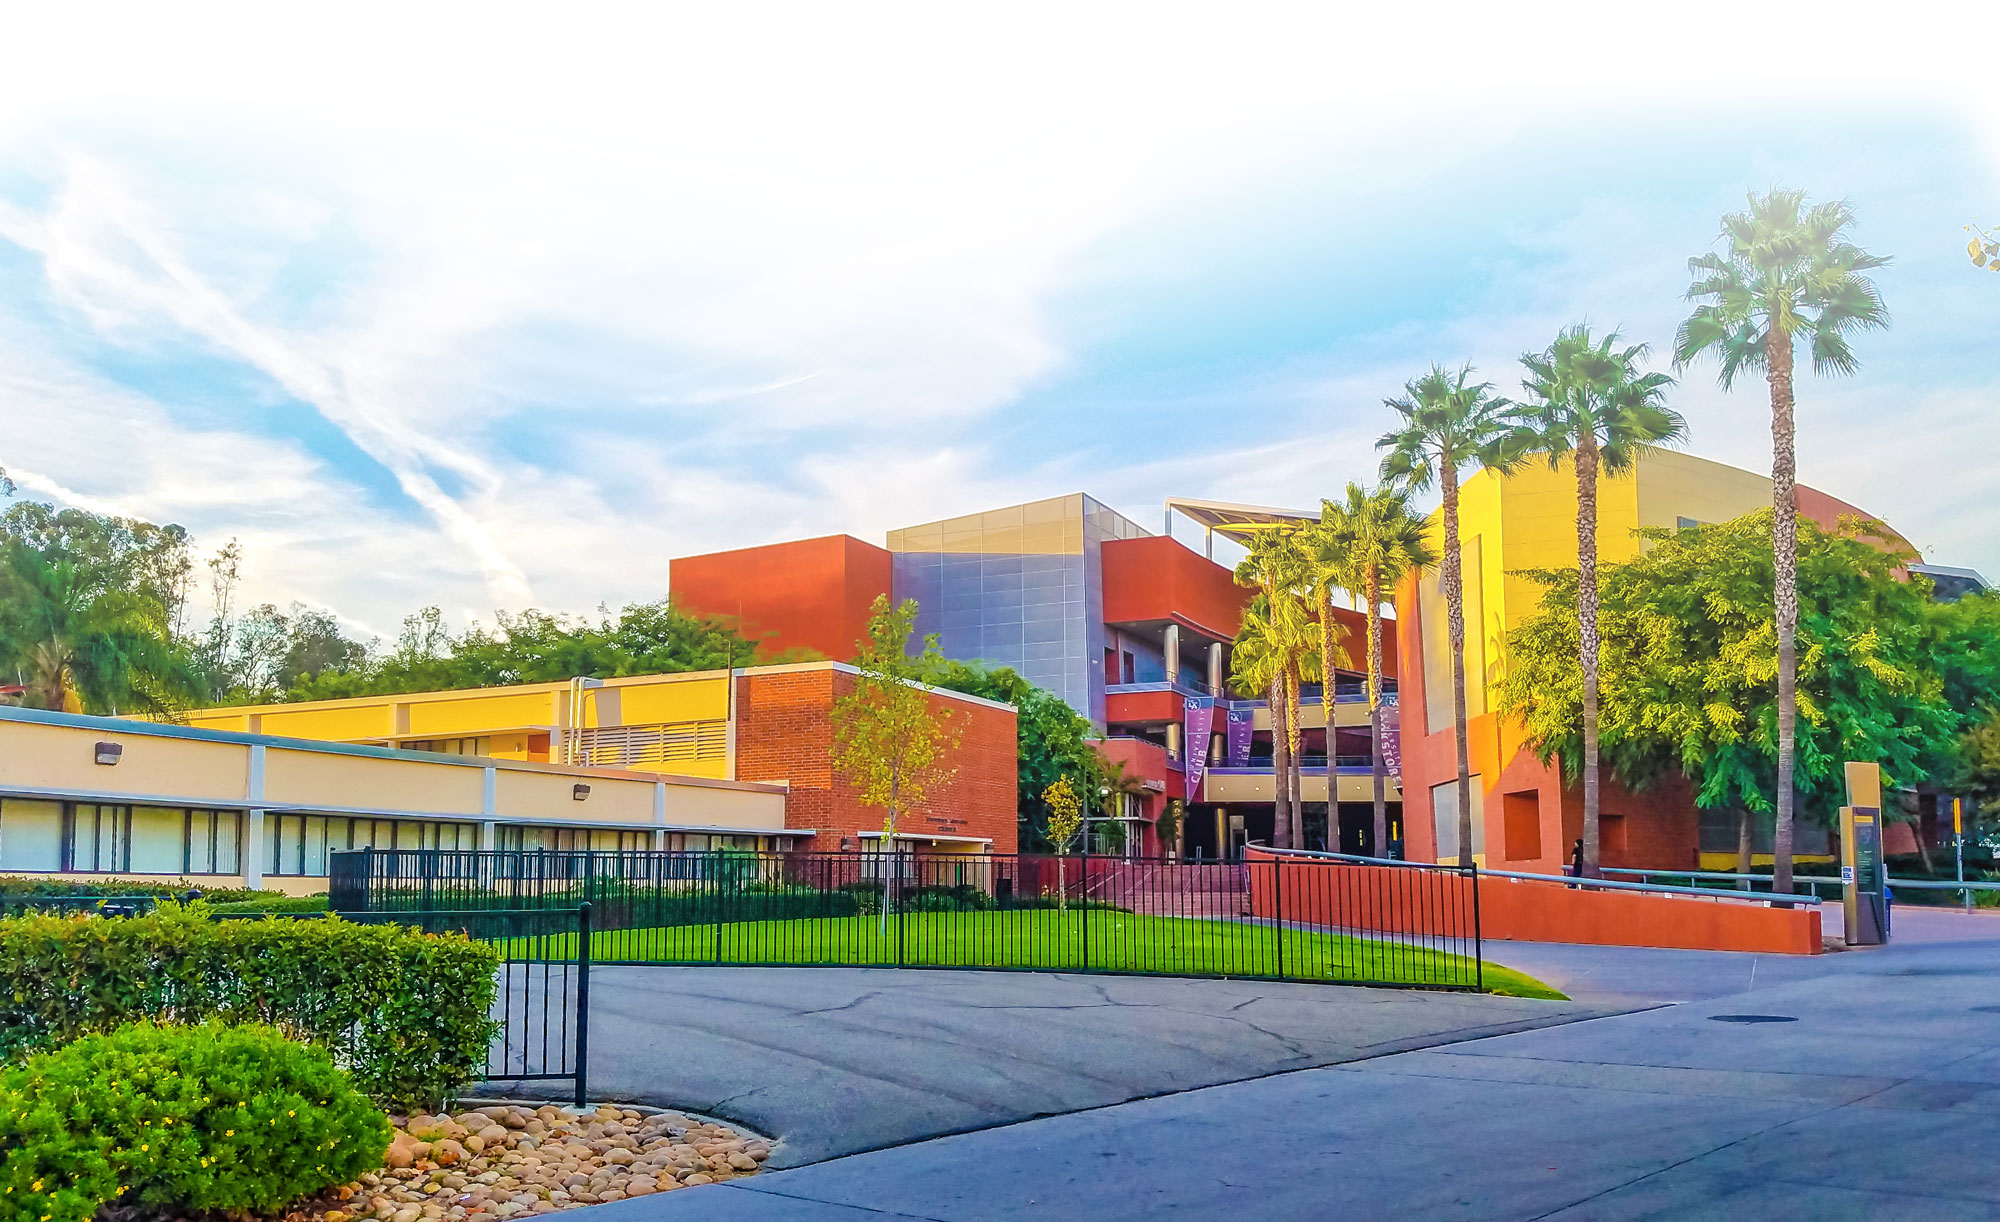 Colorful depiction of Cal State LA's campus